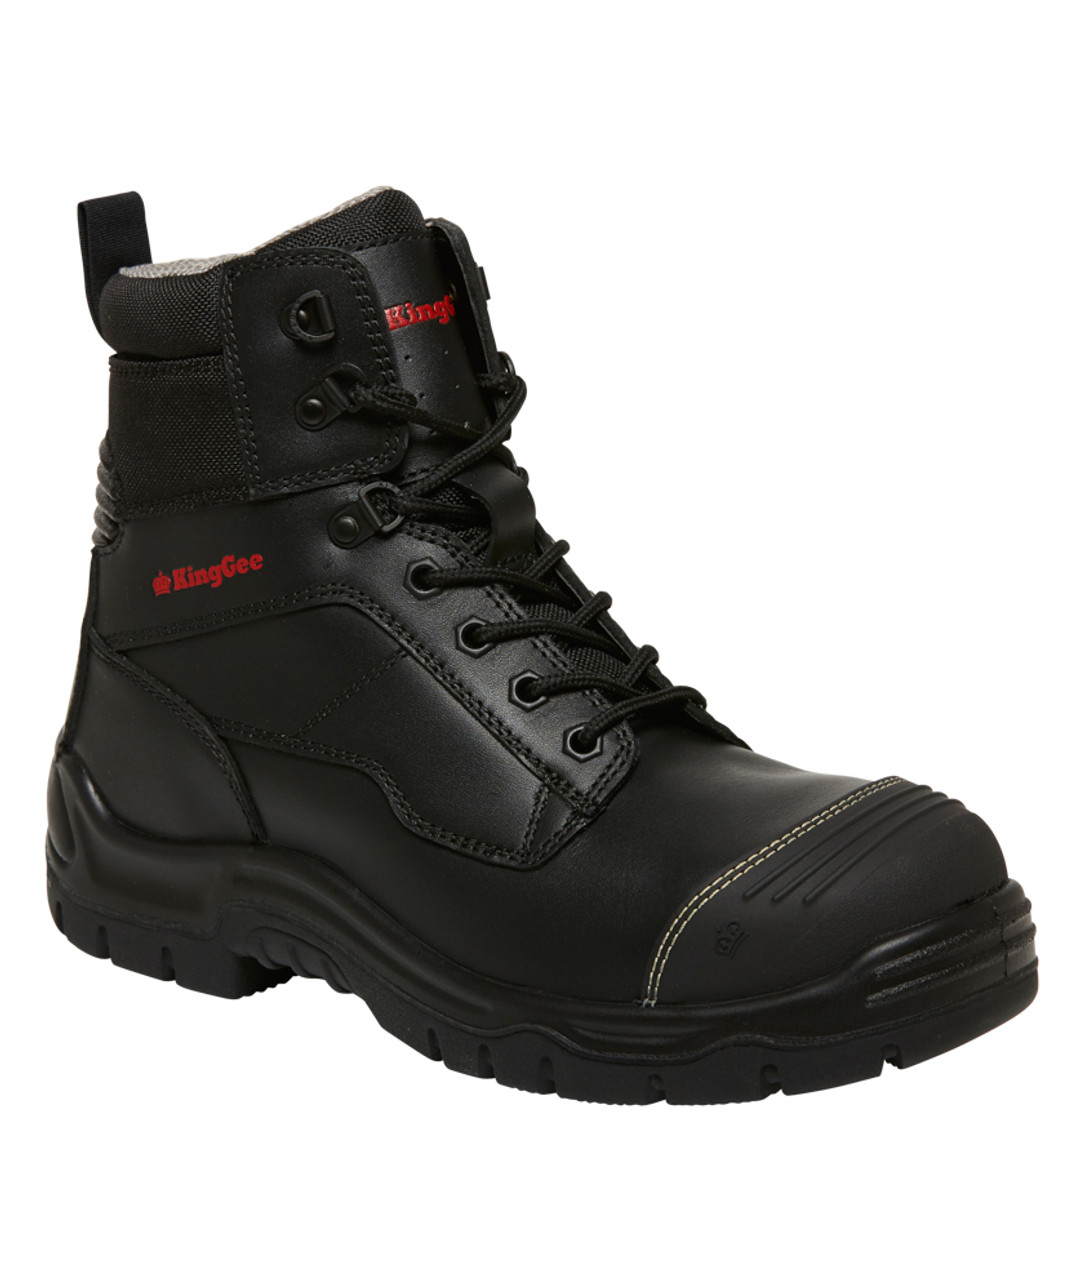 2276d7d8a10 KingGee Phoenix 6CZ EH 6 Inch Leather Zip Sided Safety Work Boots ...